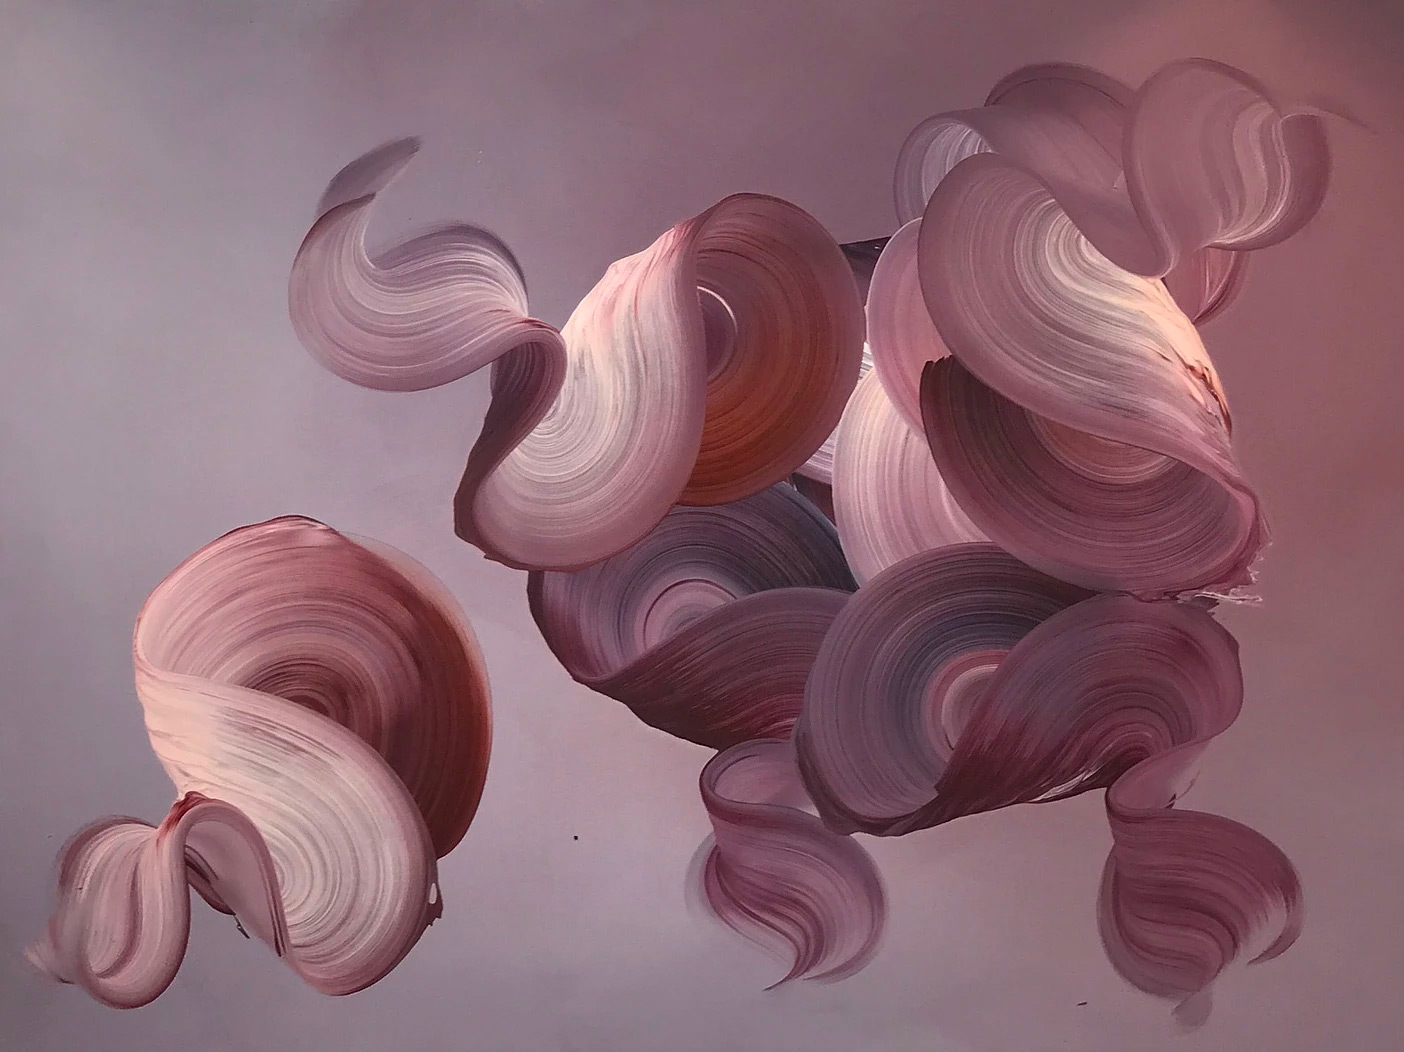 Dimensional Swirls Appear to Lift Off the Canvases of Painter Dragica Carlin | Colossal